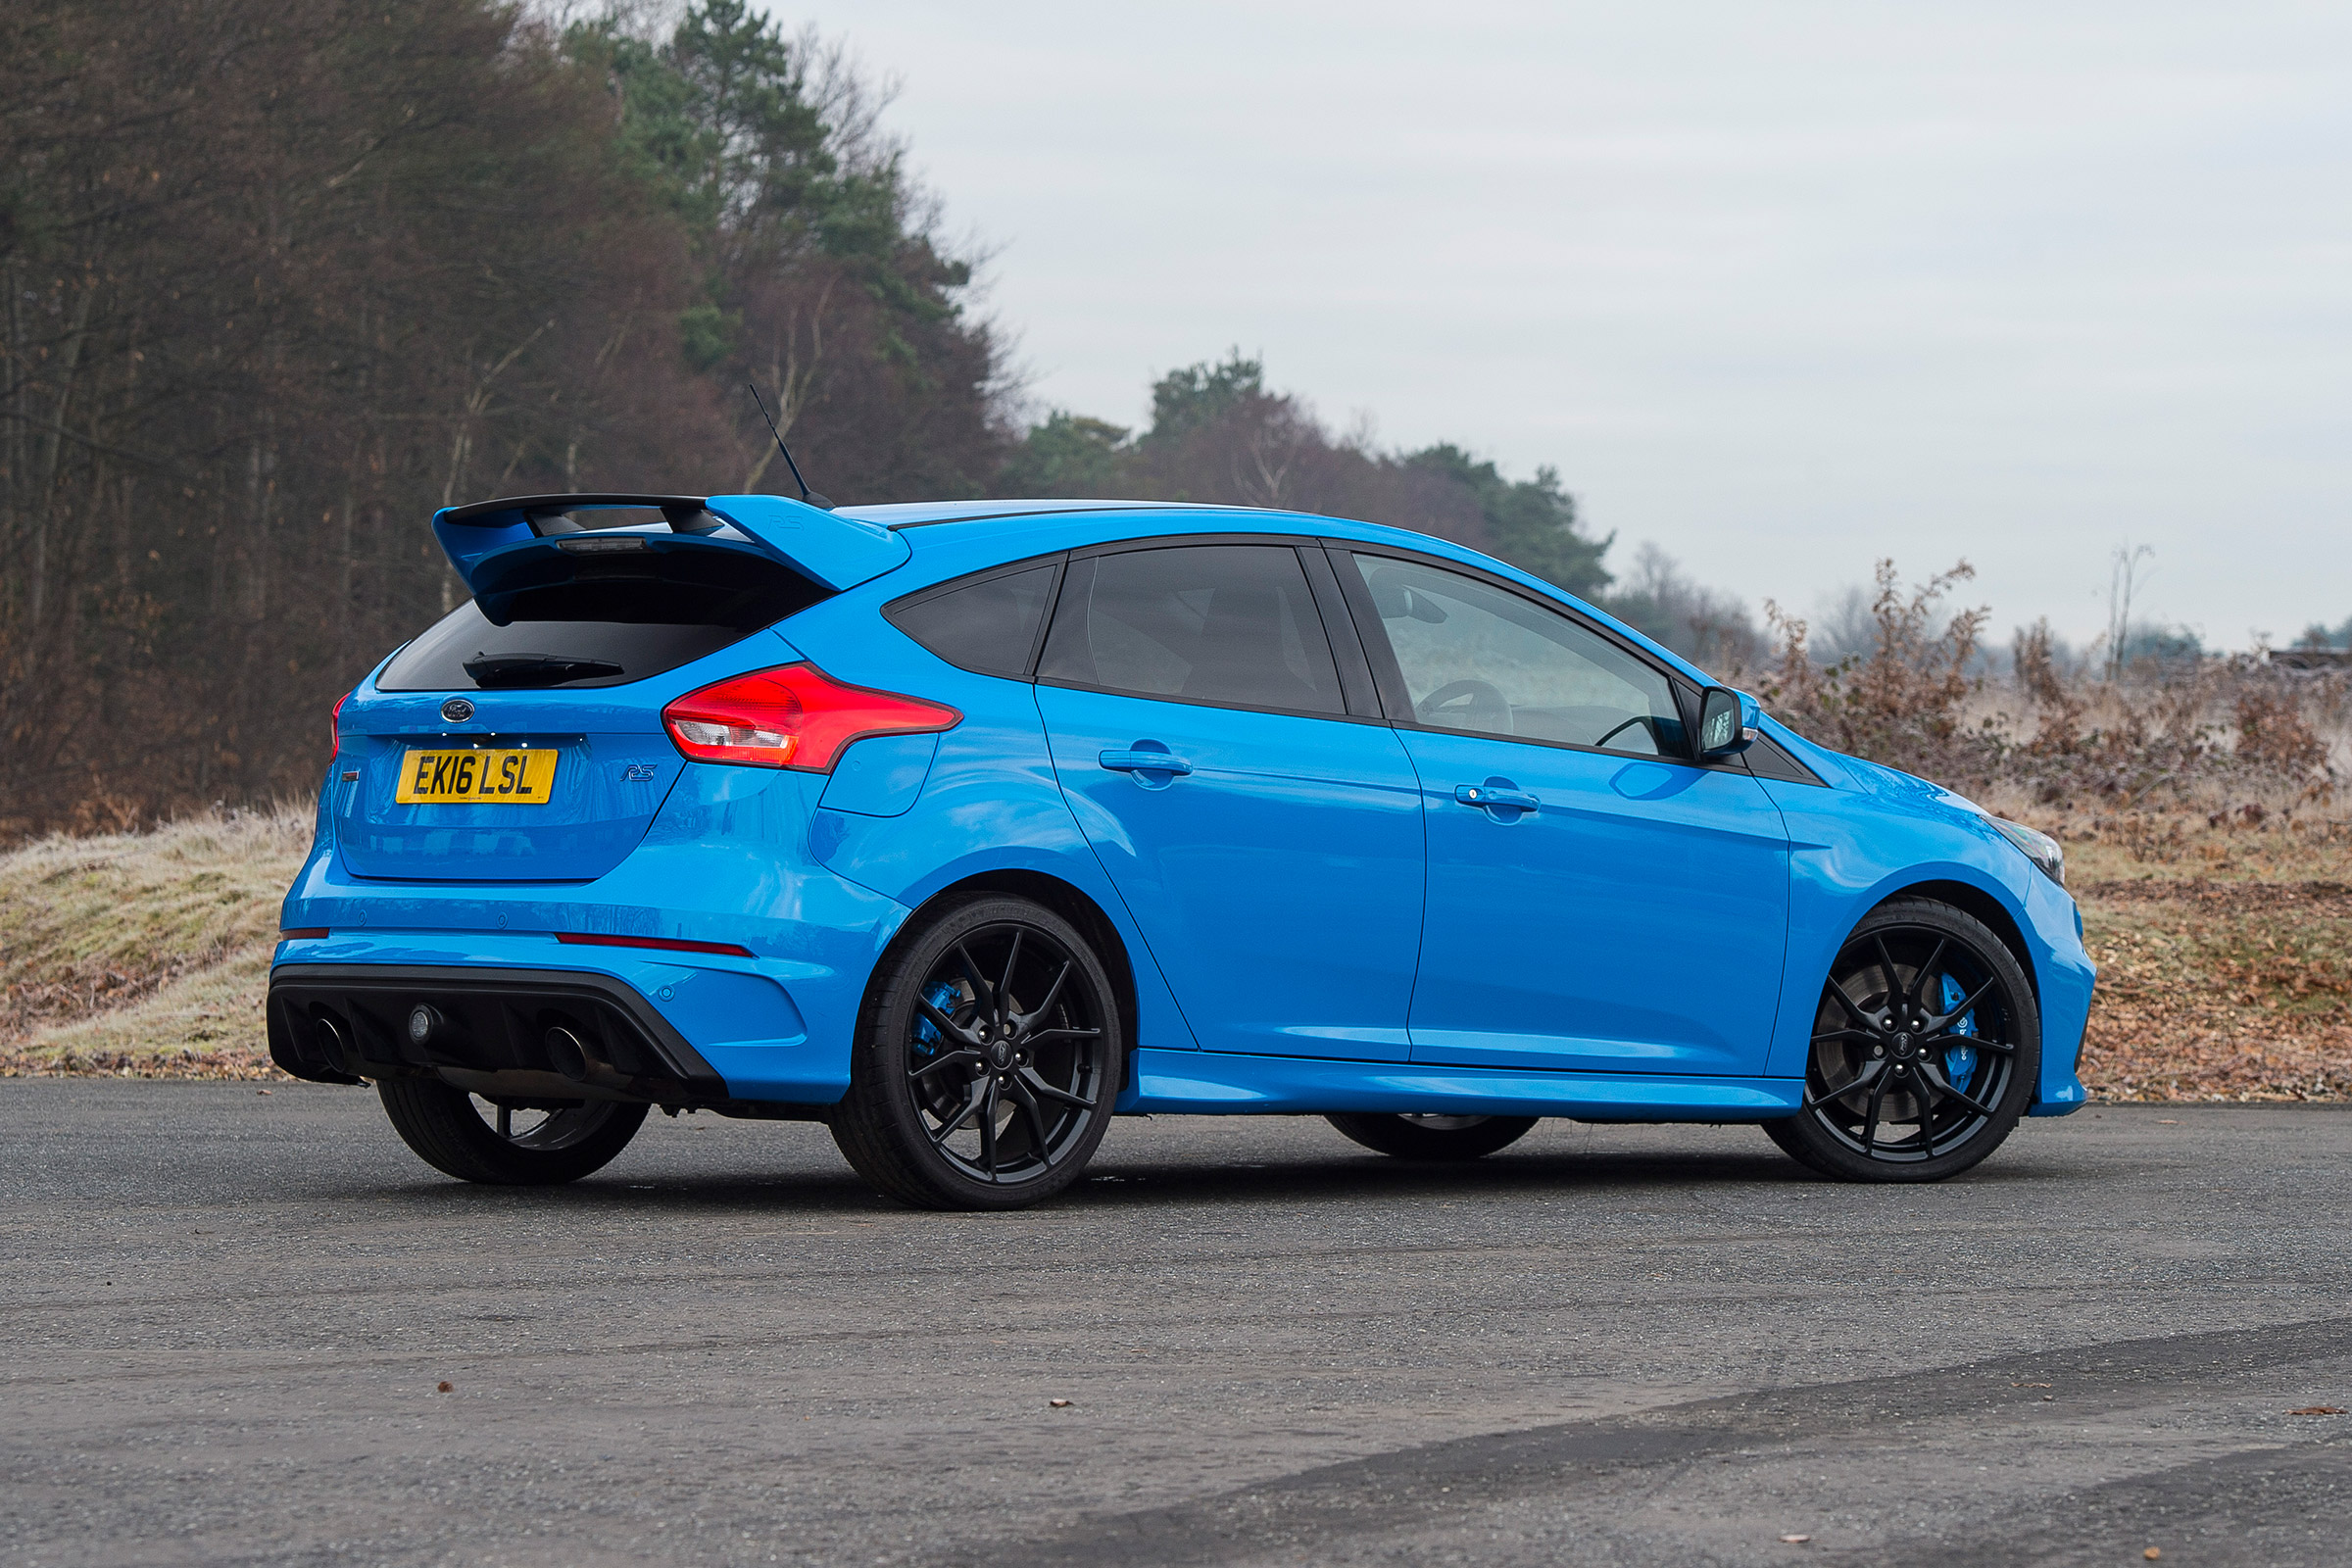 2017 Ford Focus RS Blue Exterior Rear And Side (View 2 of 23)